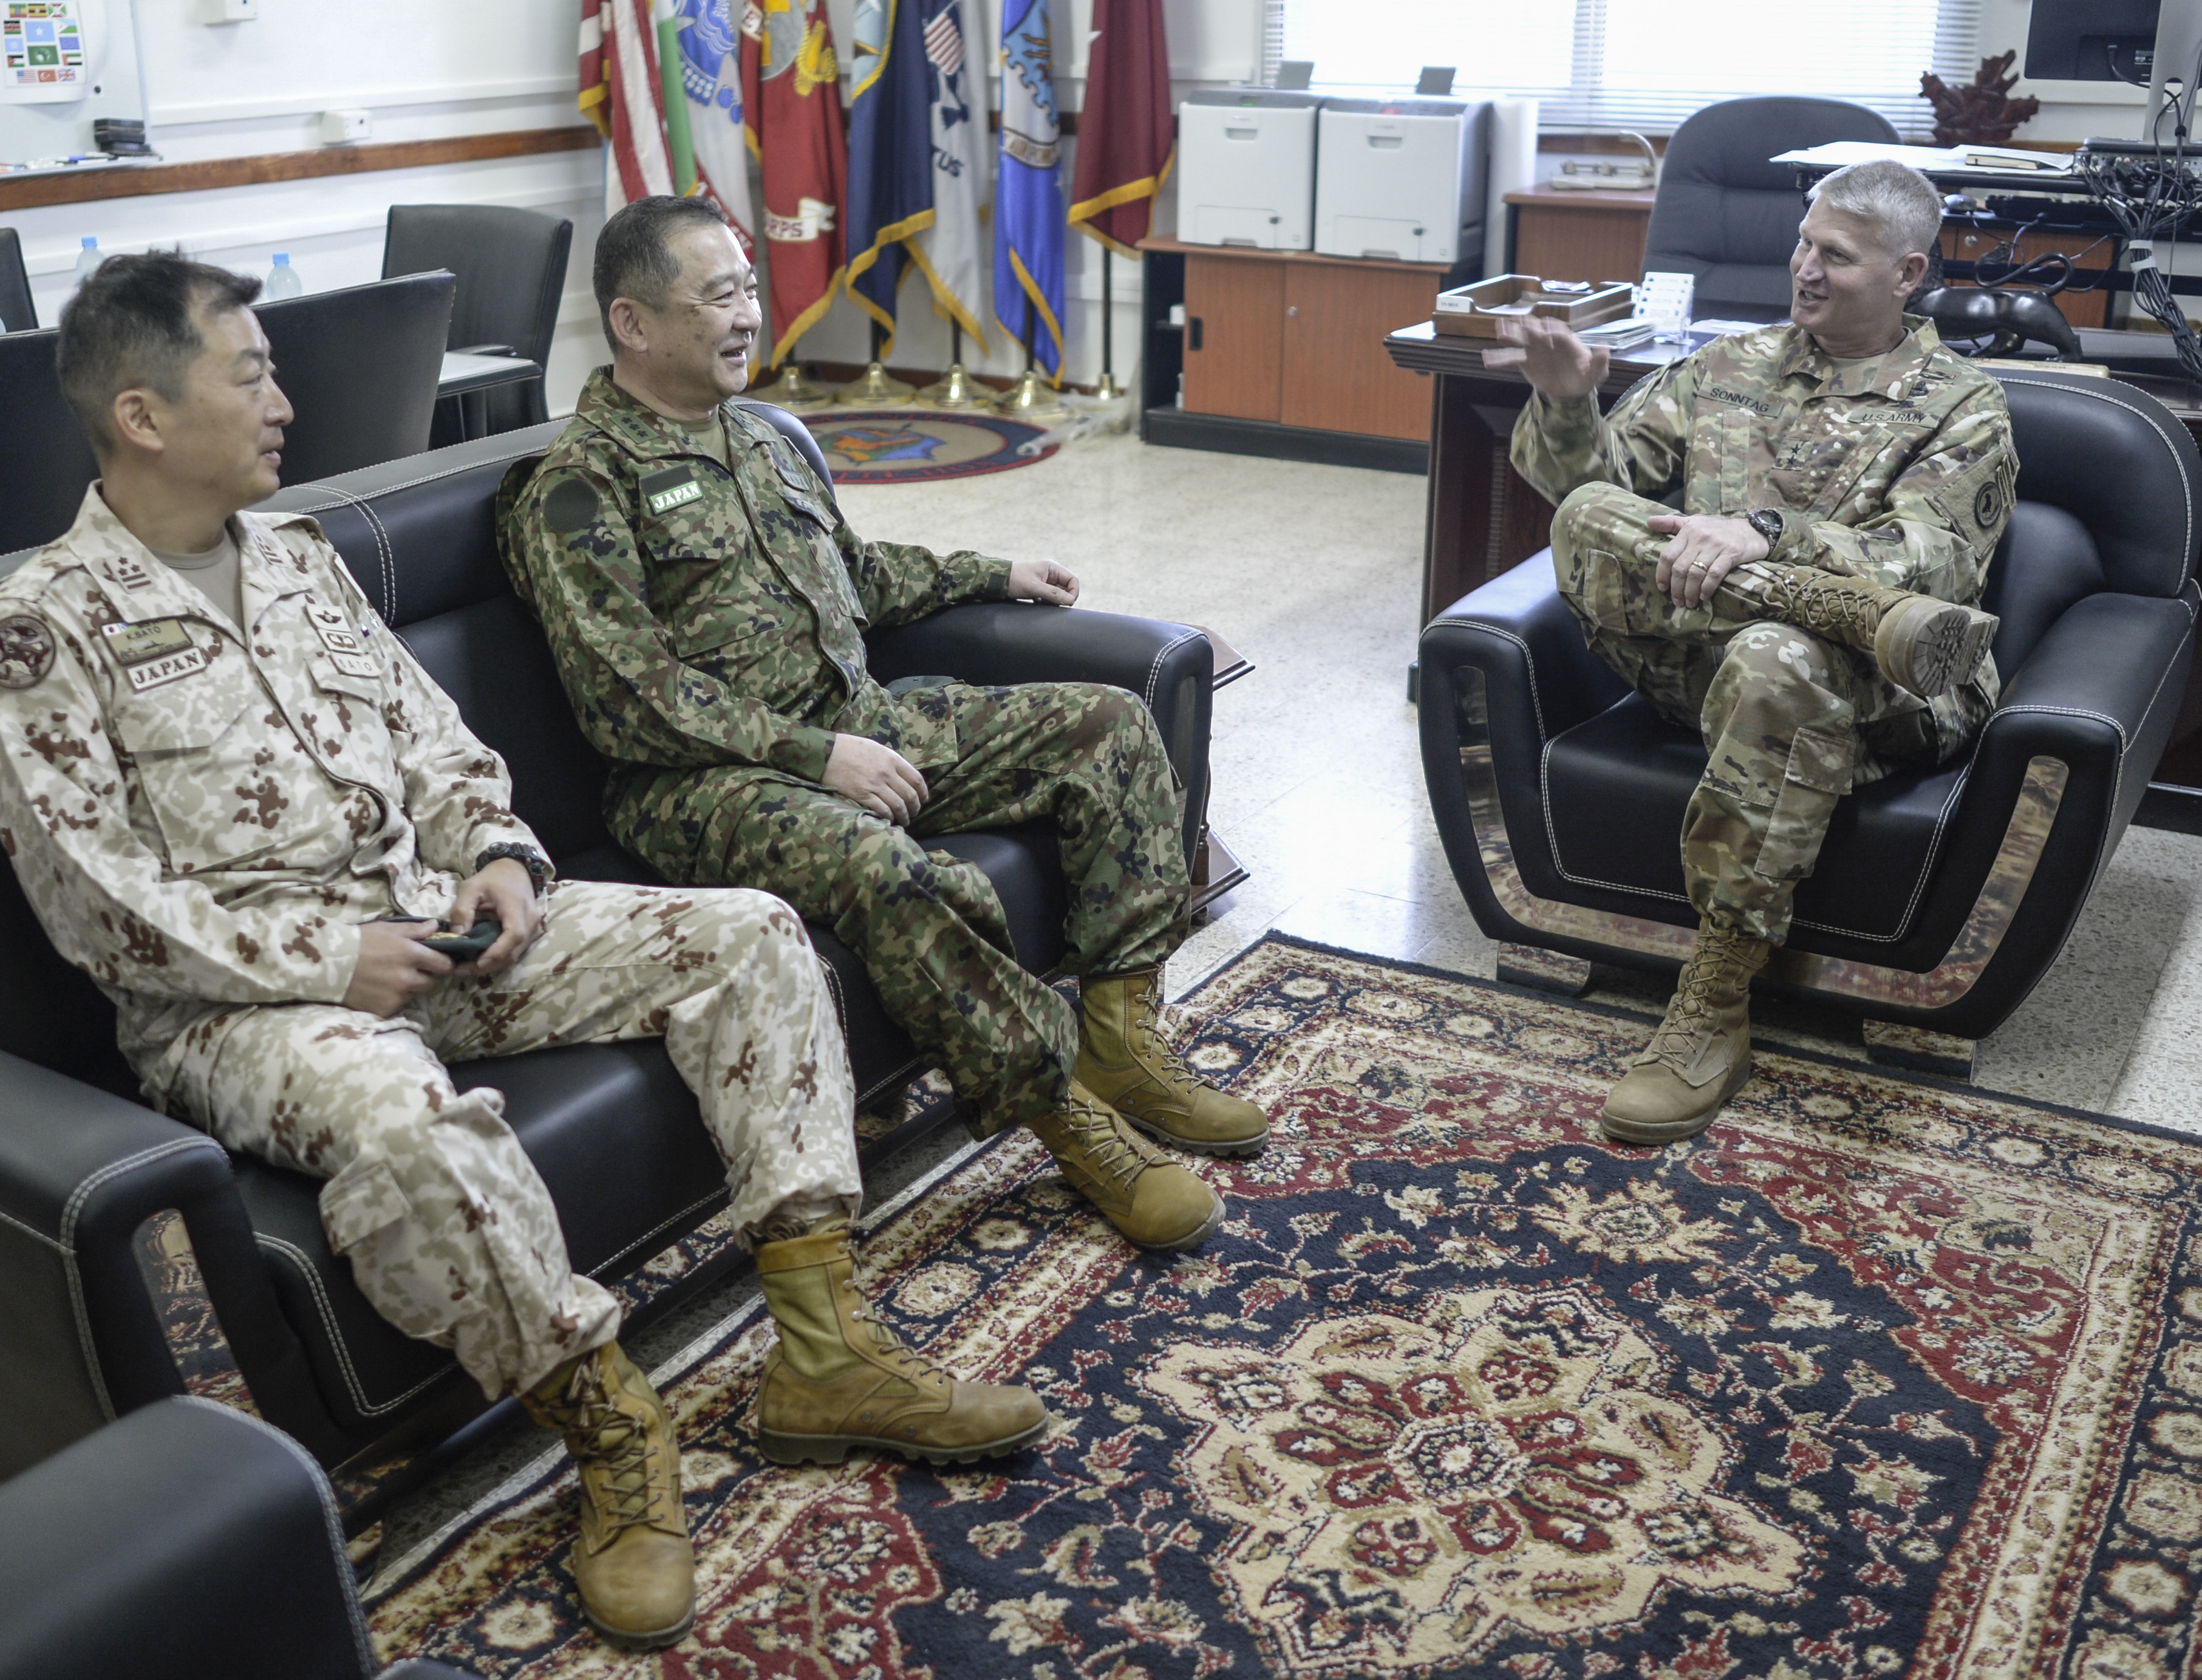 Lt. Gen. Goro Yuasa, vice chief of the Joint Staff of the Japan GroundSelf-Defense Forces meets with U.S. Army Major Gen. Kurt Sonntag,commander, Combined Joint Task Force-Horn of Africa, on his visit toCamp Lemonnier Jan. 14, 2017. Lt. Gen. Yuasa met with U.S. officials at Camp Lemonnier to further relations between Japan and its partner nations in the Horn of Africa. (U.S. Air National Guard photo by Staff Sgt. Christian Jadot)